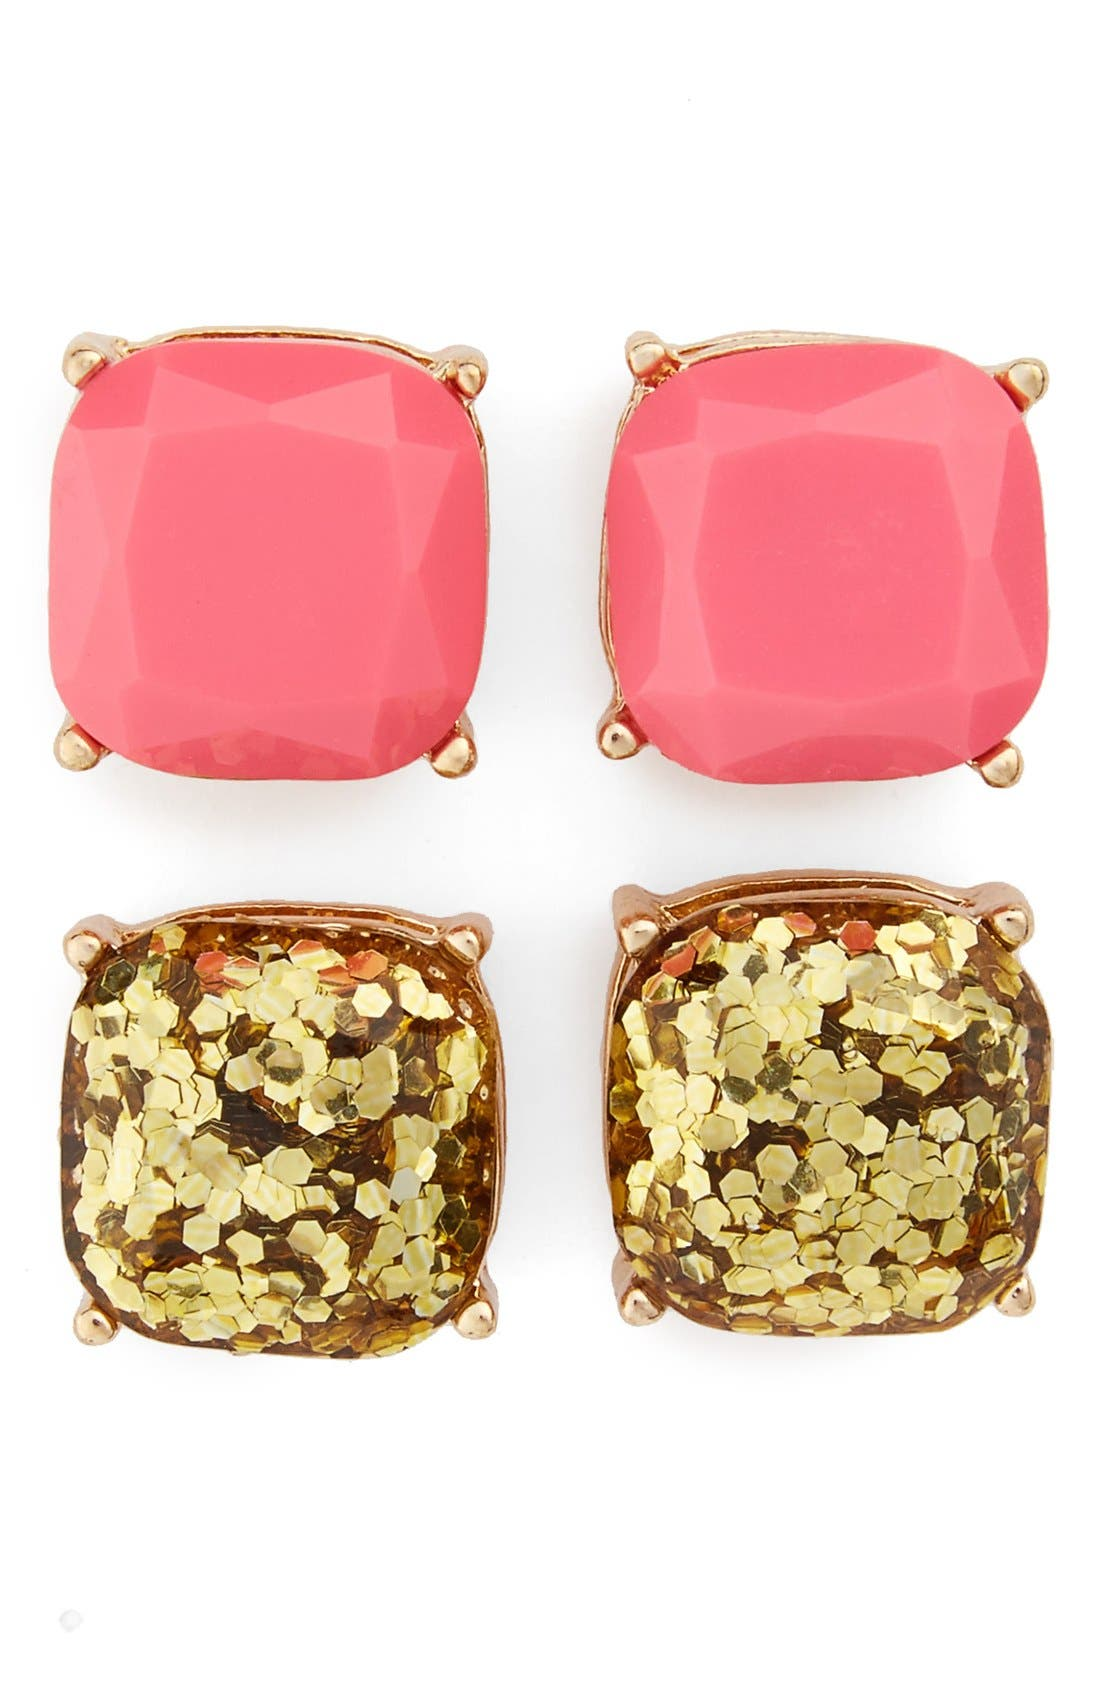 Square Stud Earrings,                             Main thumbnail 1, color,                             Pink/ Gold